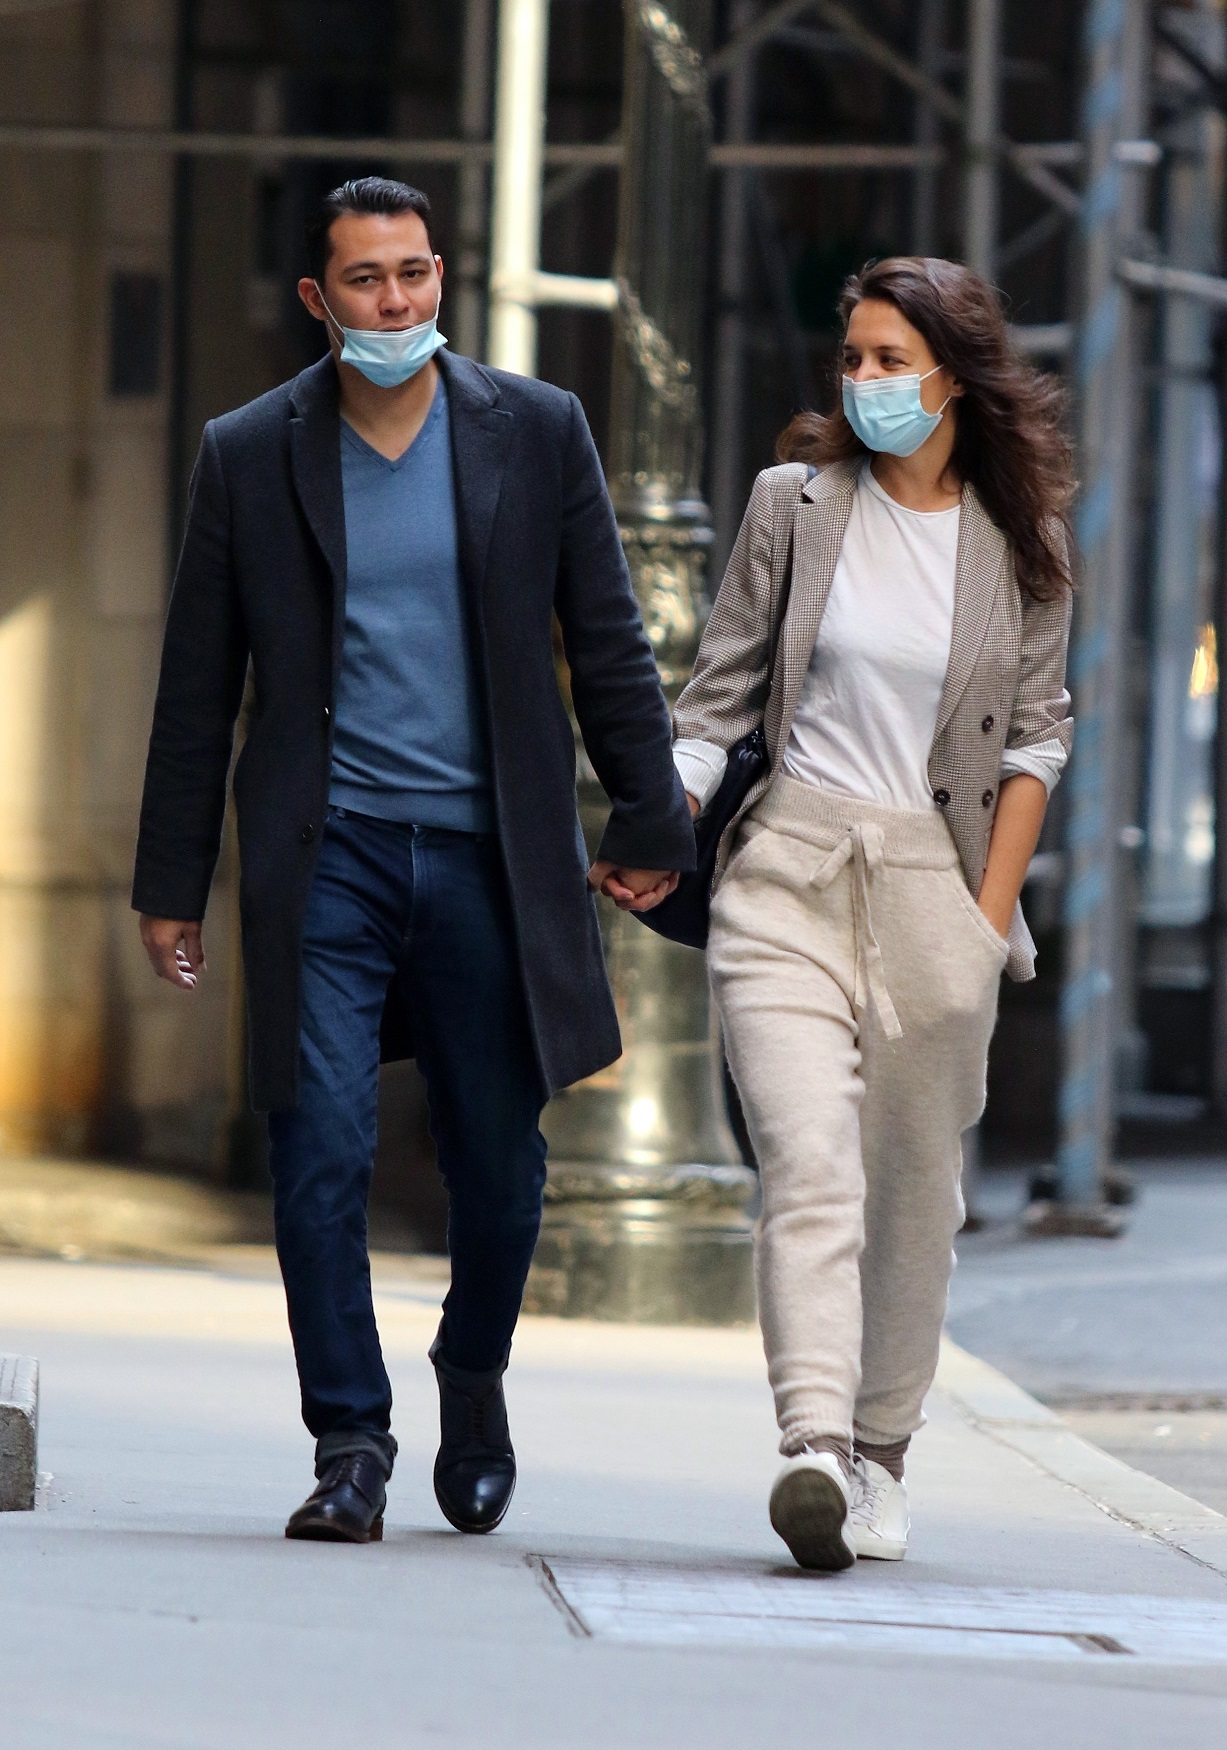 New York, NY  - Katie Holmes and boyfriend Emilio Vitolo Jr. are seen walking hand-in-hand after taking a ride in his red Pontiac from Katie's Soho apartment all the way to Downtown's Wall Street area. Emilio arrived at Katie's apt to pick her up, but first Katie invited her Chef boyfriend to her apt where the couple spent half hour inside before going for a joyride in his red Pontiac. The Chef was a gentleman as Katie patiently waited for him to open the car door for her. The new couple were all smiles as they spent the day touring New York City.  BACKGRID USA 21 SEPTEMBER 2020,Image: 559111927, License: Rights-managed, Restrictions: , Model Release: no, Credit line: BrosNYC / BACKGRID / Backgrid USA / Profimedia